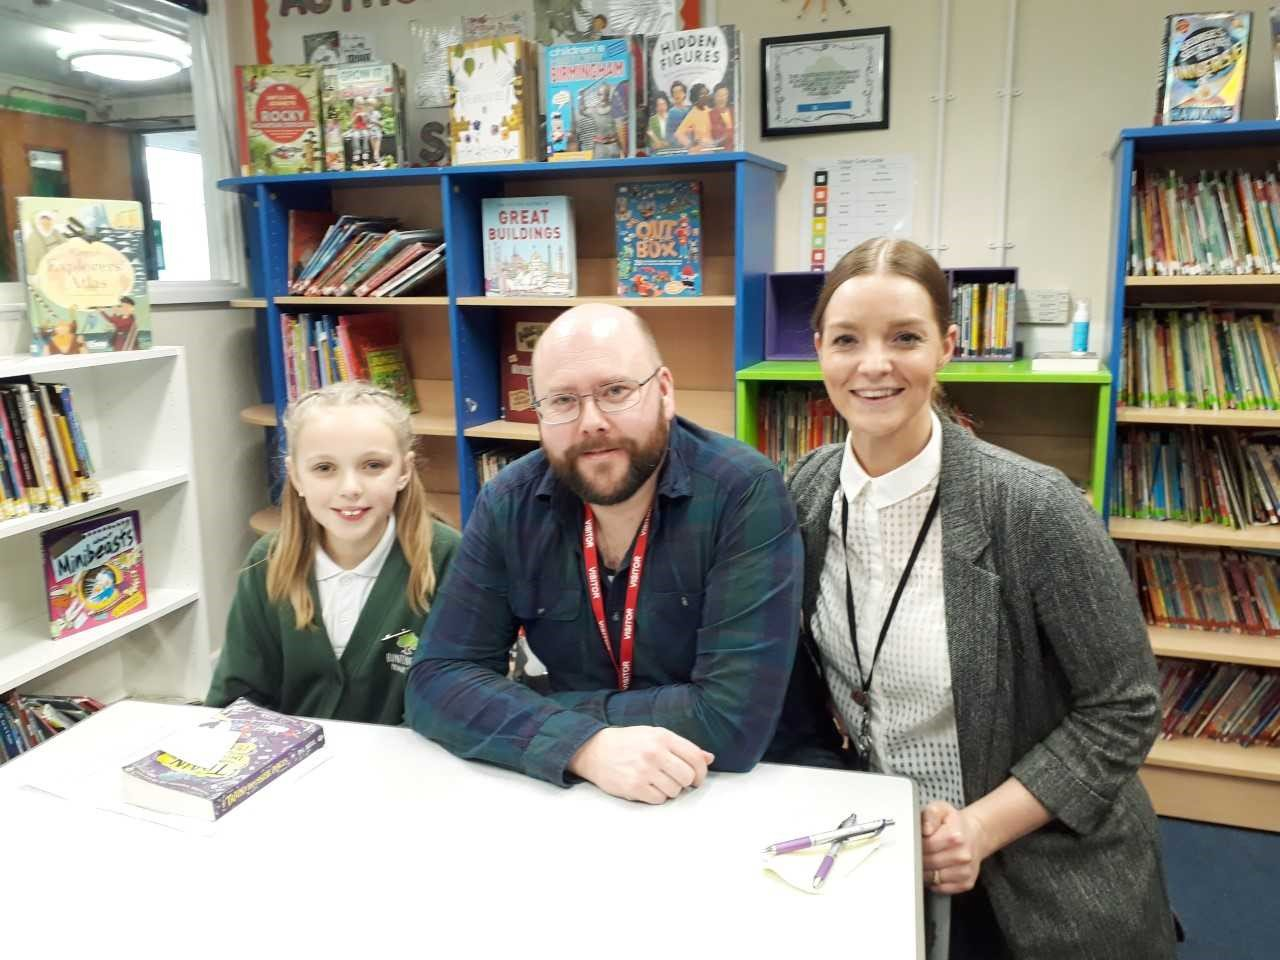 P.G. Bell with Alicia and Miss Samantha Jones of Huntingtree Primary